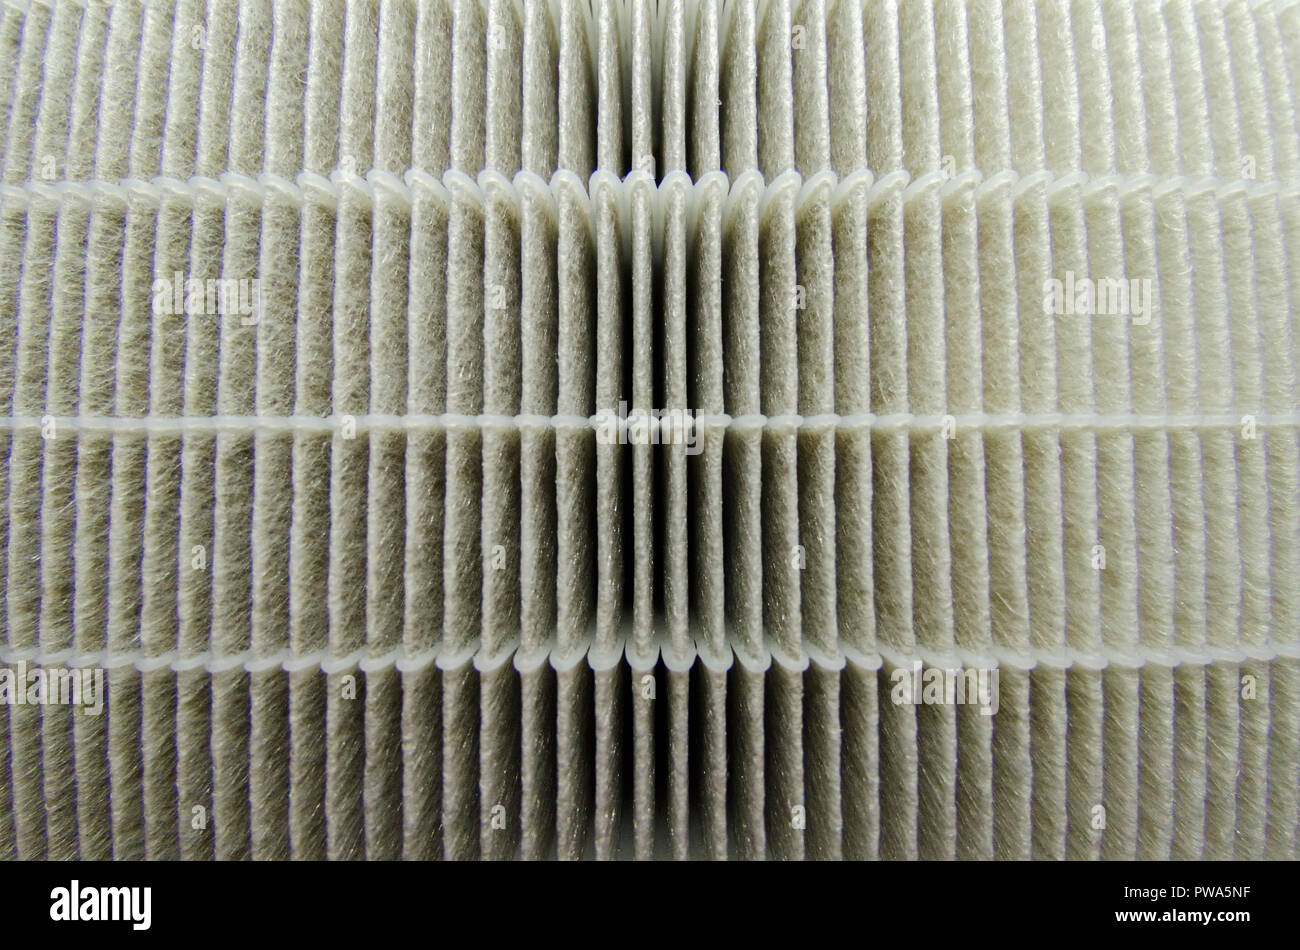 Hepa filter air pollution close up - Stock Image